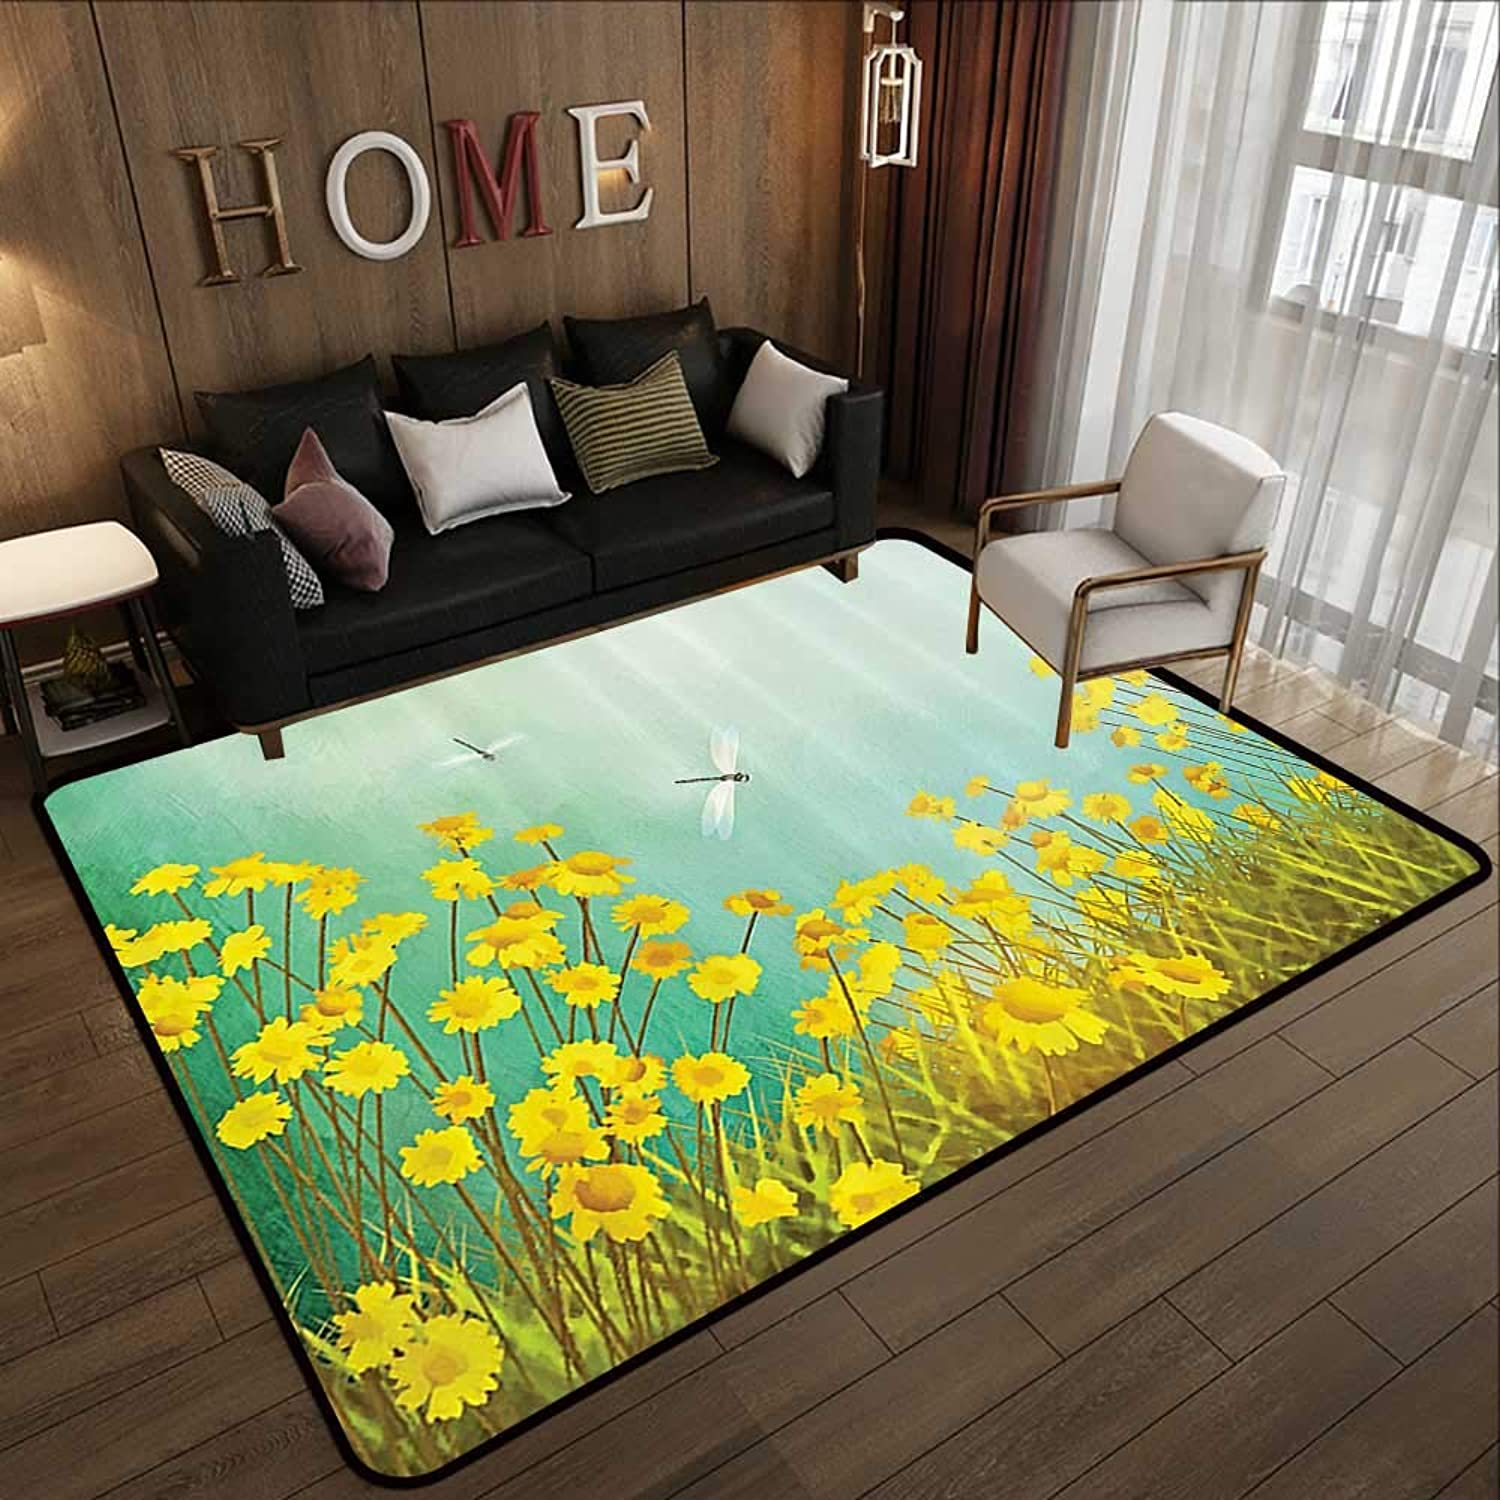 Carpet mat,Country Decor,Flourishing Artistic Landscape with Daisies On The Grass and Dragonflies in The Air,Green Yellow 47 x 59  Floor Mat Entrance Doormat